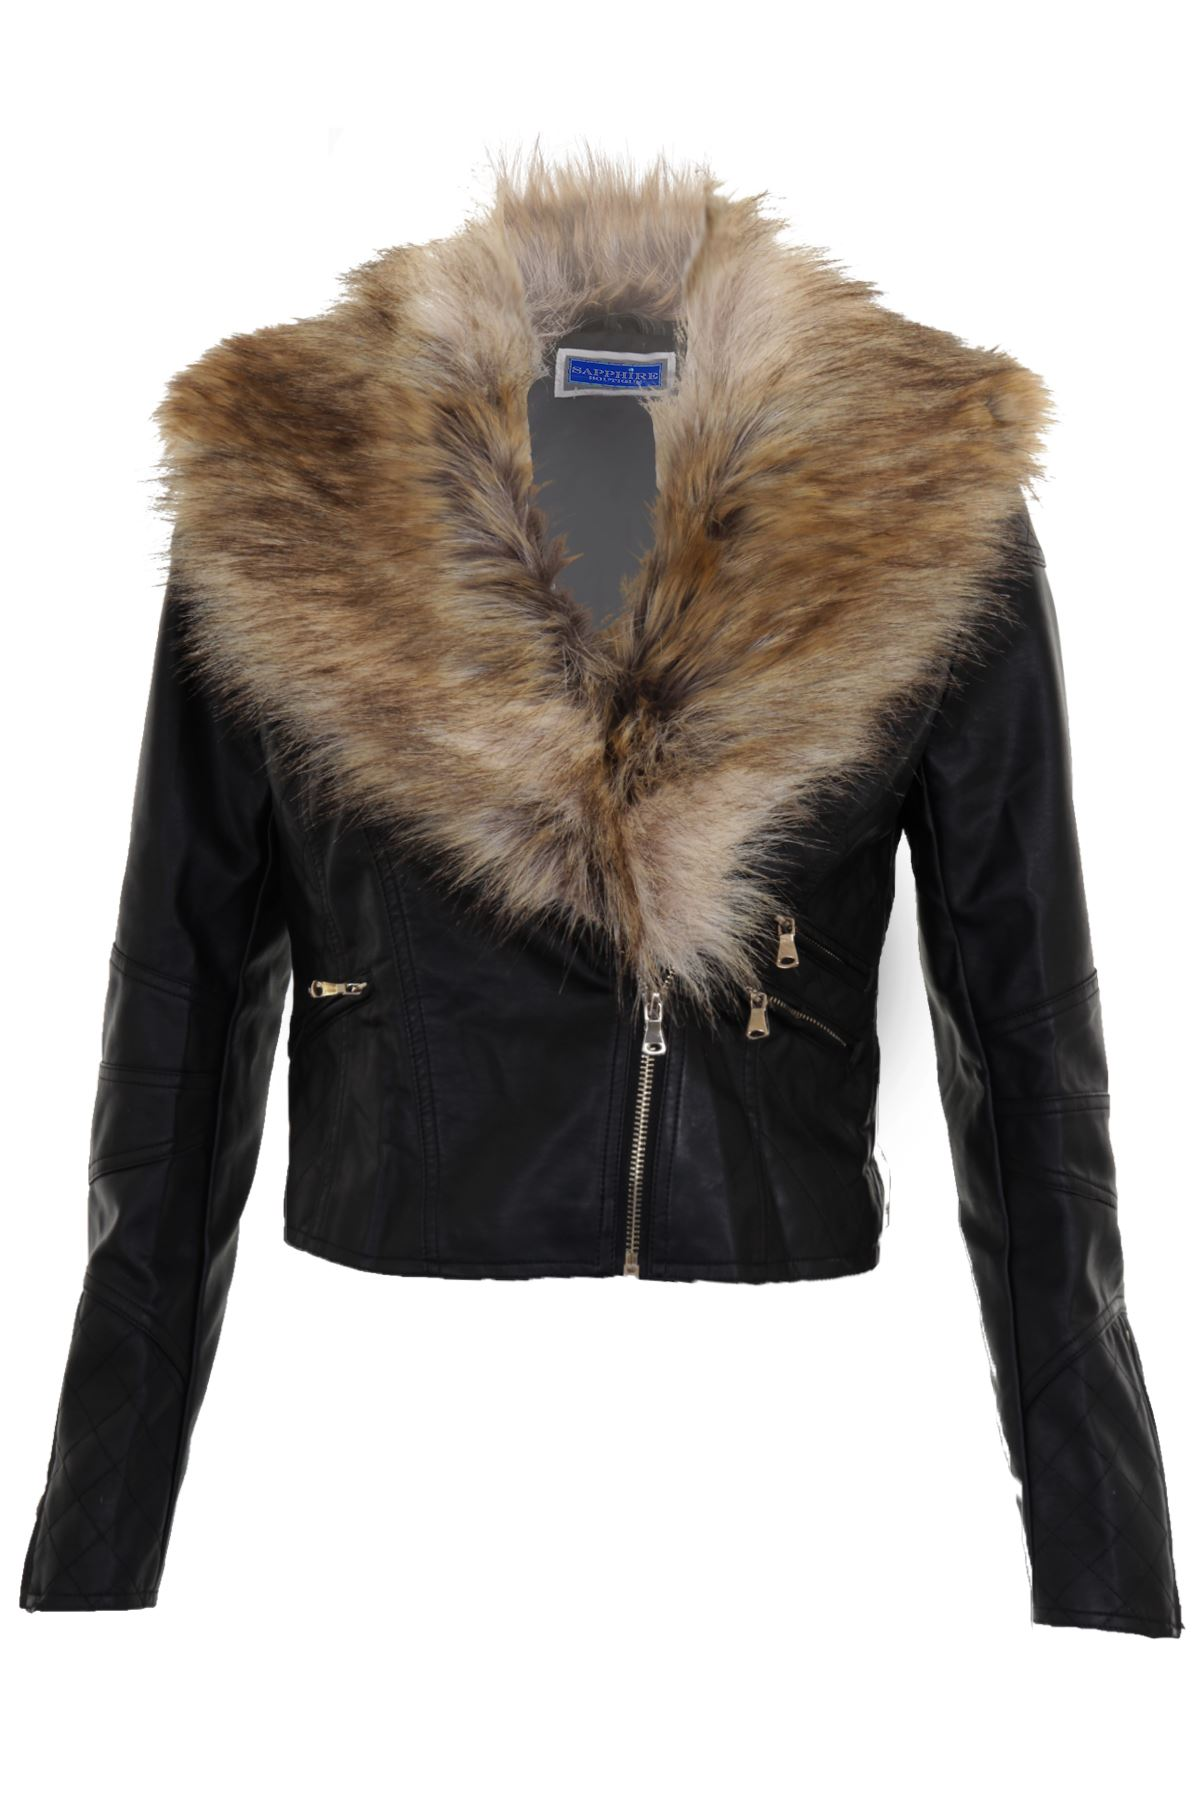 Buy women's coats & jackets online at French Connection now. Update your outerwear for SS18 with our chic collection of coats & lightweight jackets for women. Women's Coats & Jackets. Inject a hit of personality through your outerwear with this wool-blend statement coat. It features a plush fur-lined collar, oversized fit with relaxed.